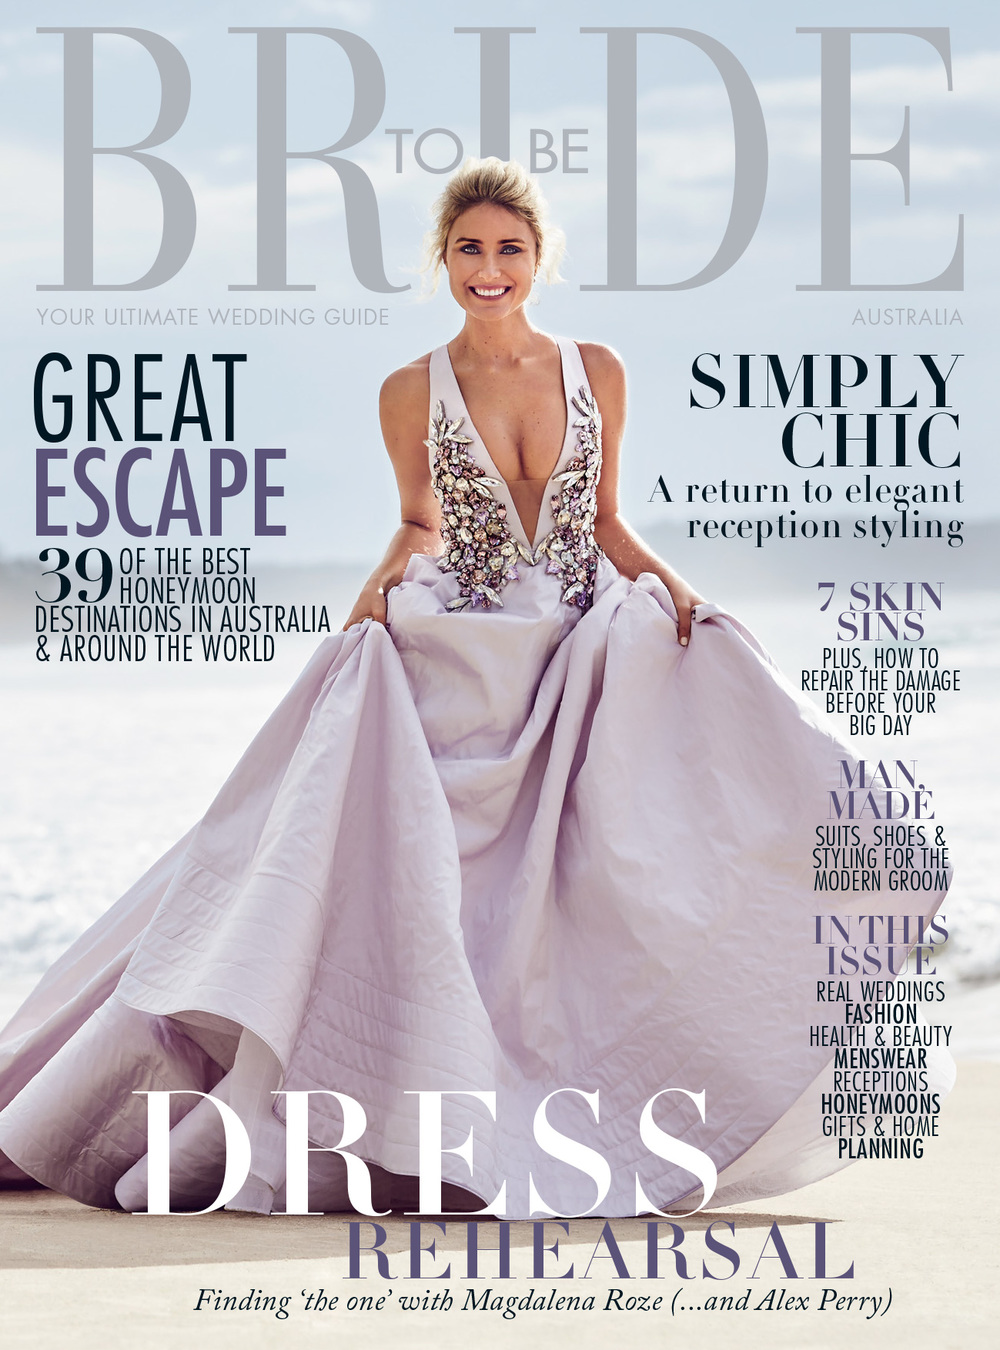 Bride to Be Magazine